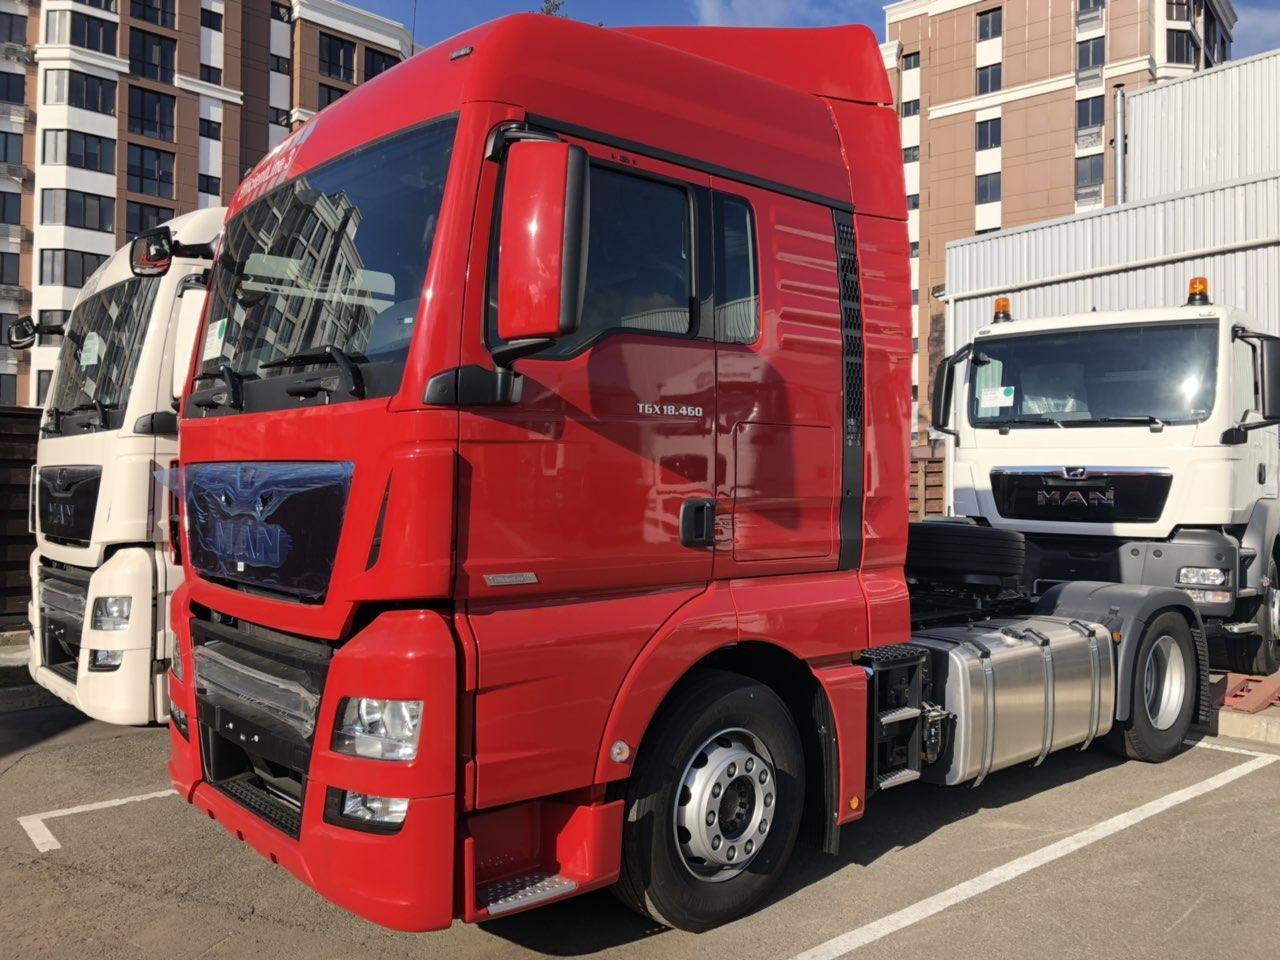 TGX 18.460 BLS 4х2 EfficientLine тягач Евро 6 кабина XLX